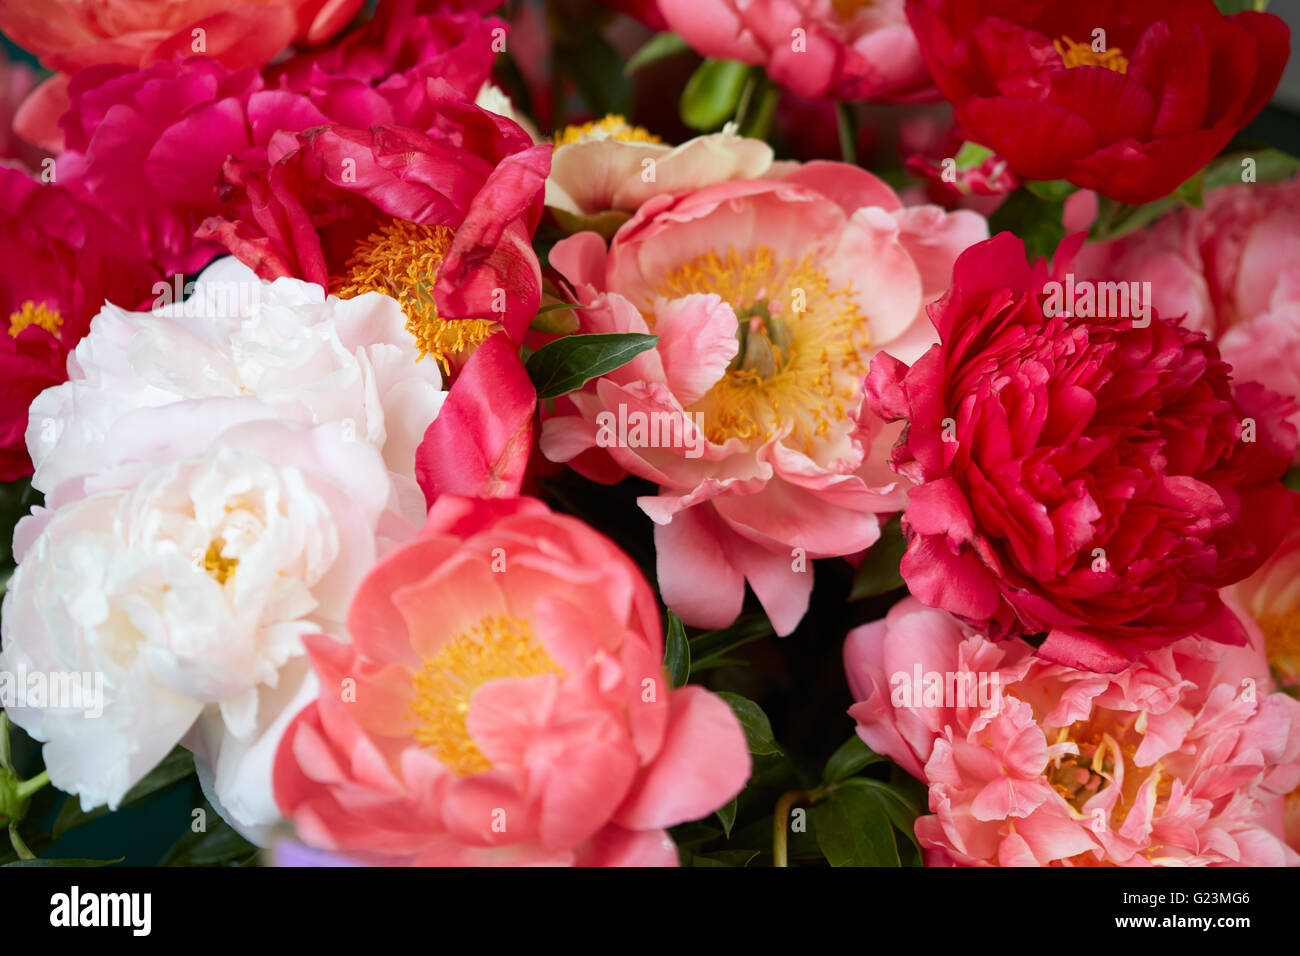 Peony flowers in red, pink and white colors background Stock Photo ...